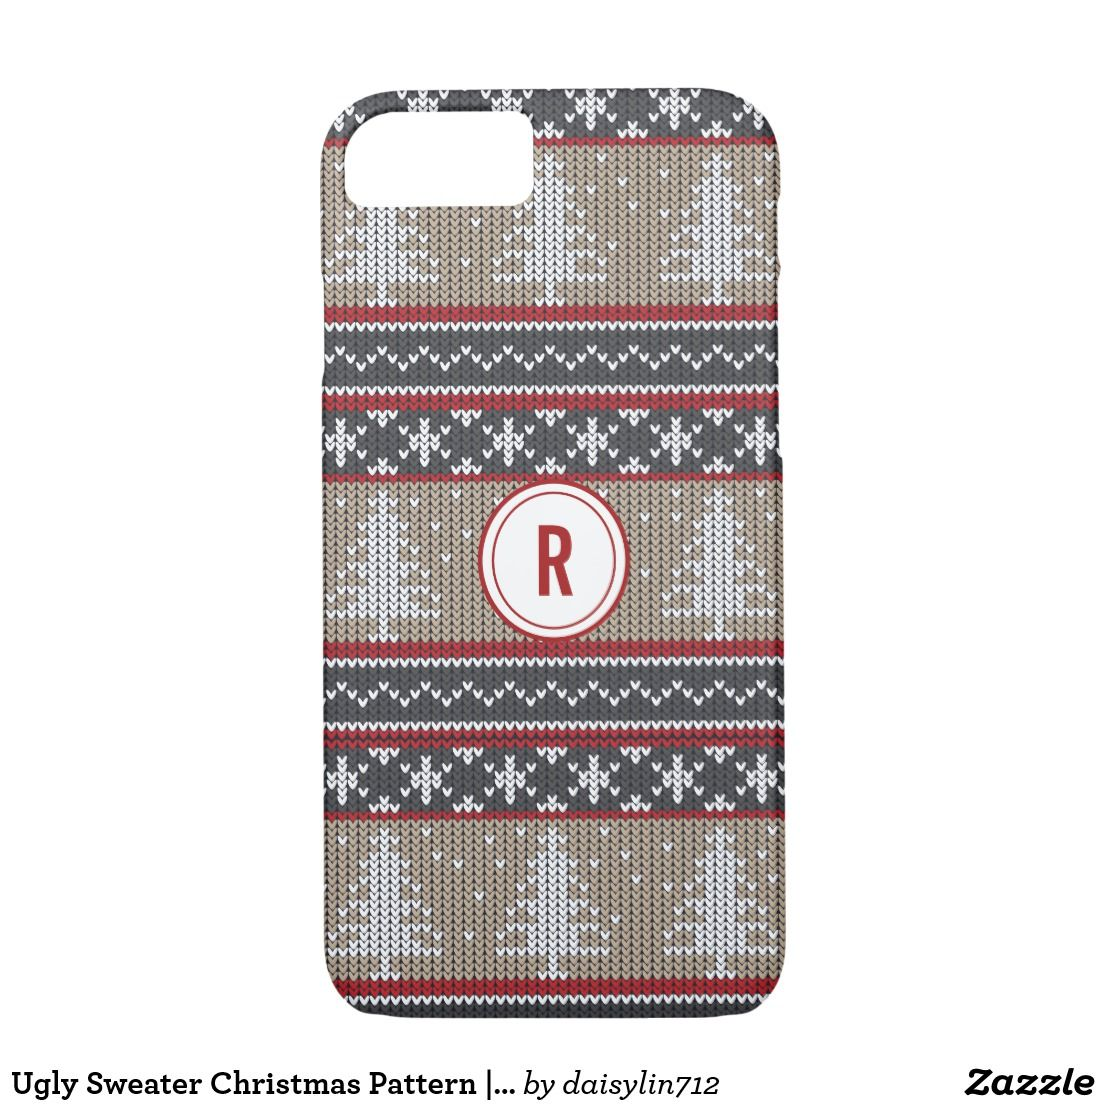 7a51eed1a Ugly Sweater Christmas Pattern